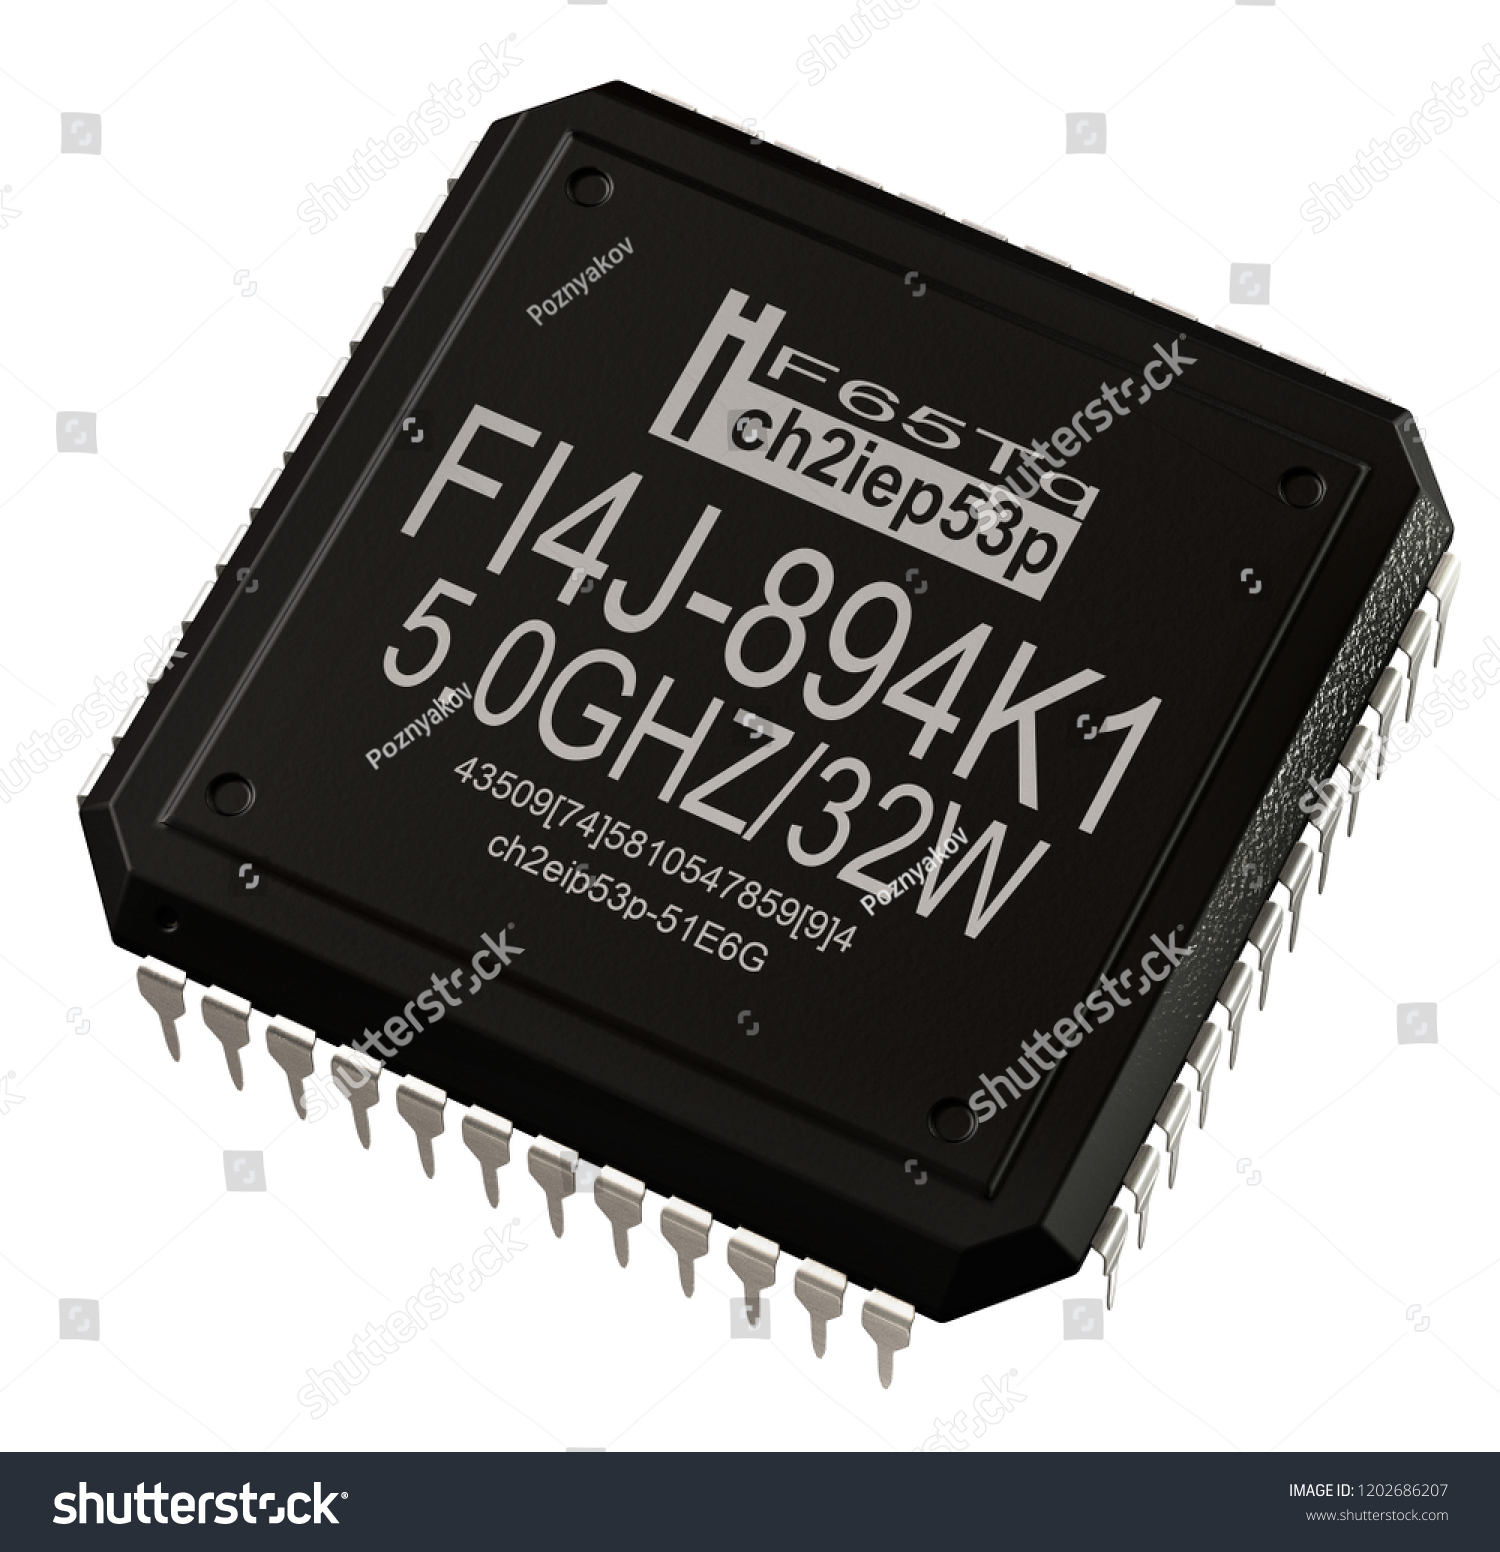 Integrated Circuit Digital Microprocessor Computer Parts Stock Where To Buy Circuits In Micro Chip Artificial Intelligence 3d Rendering New